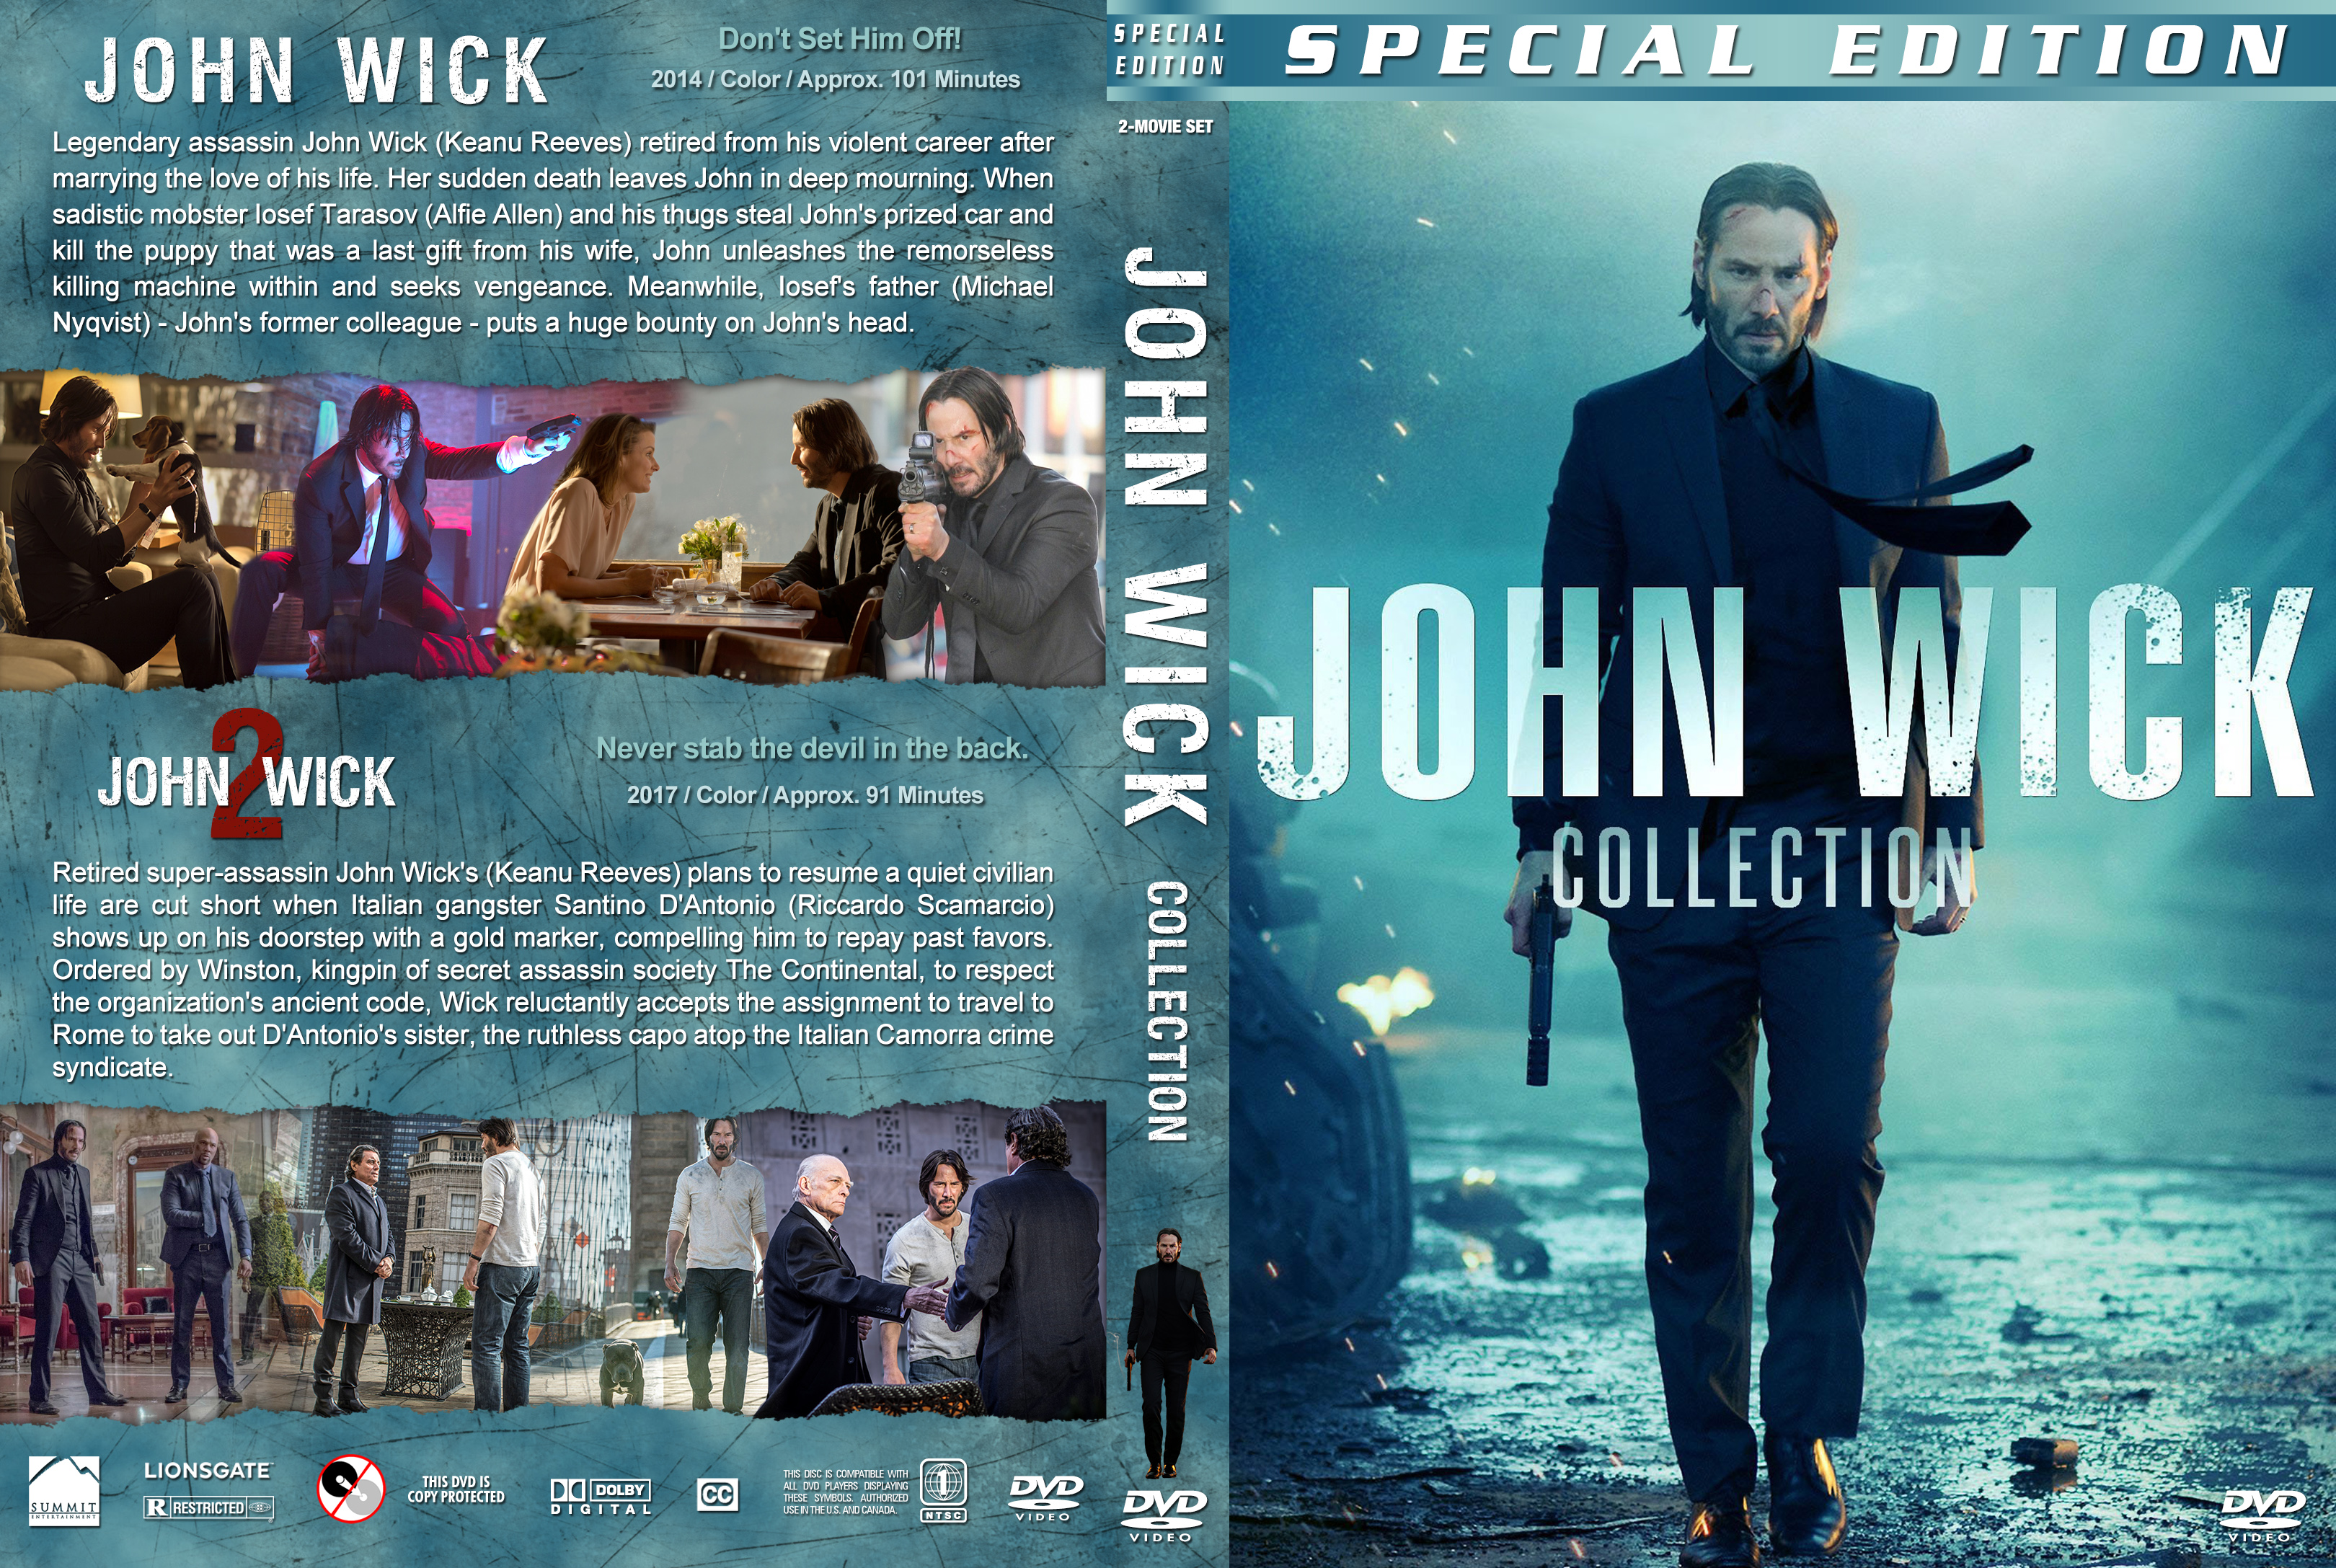 Download John Wick Chapter 2 John Wick Collection 2017 Covers V3 Dvd Covers And Labels